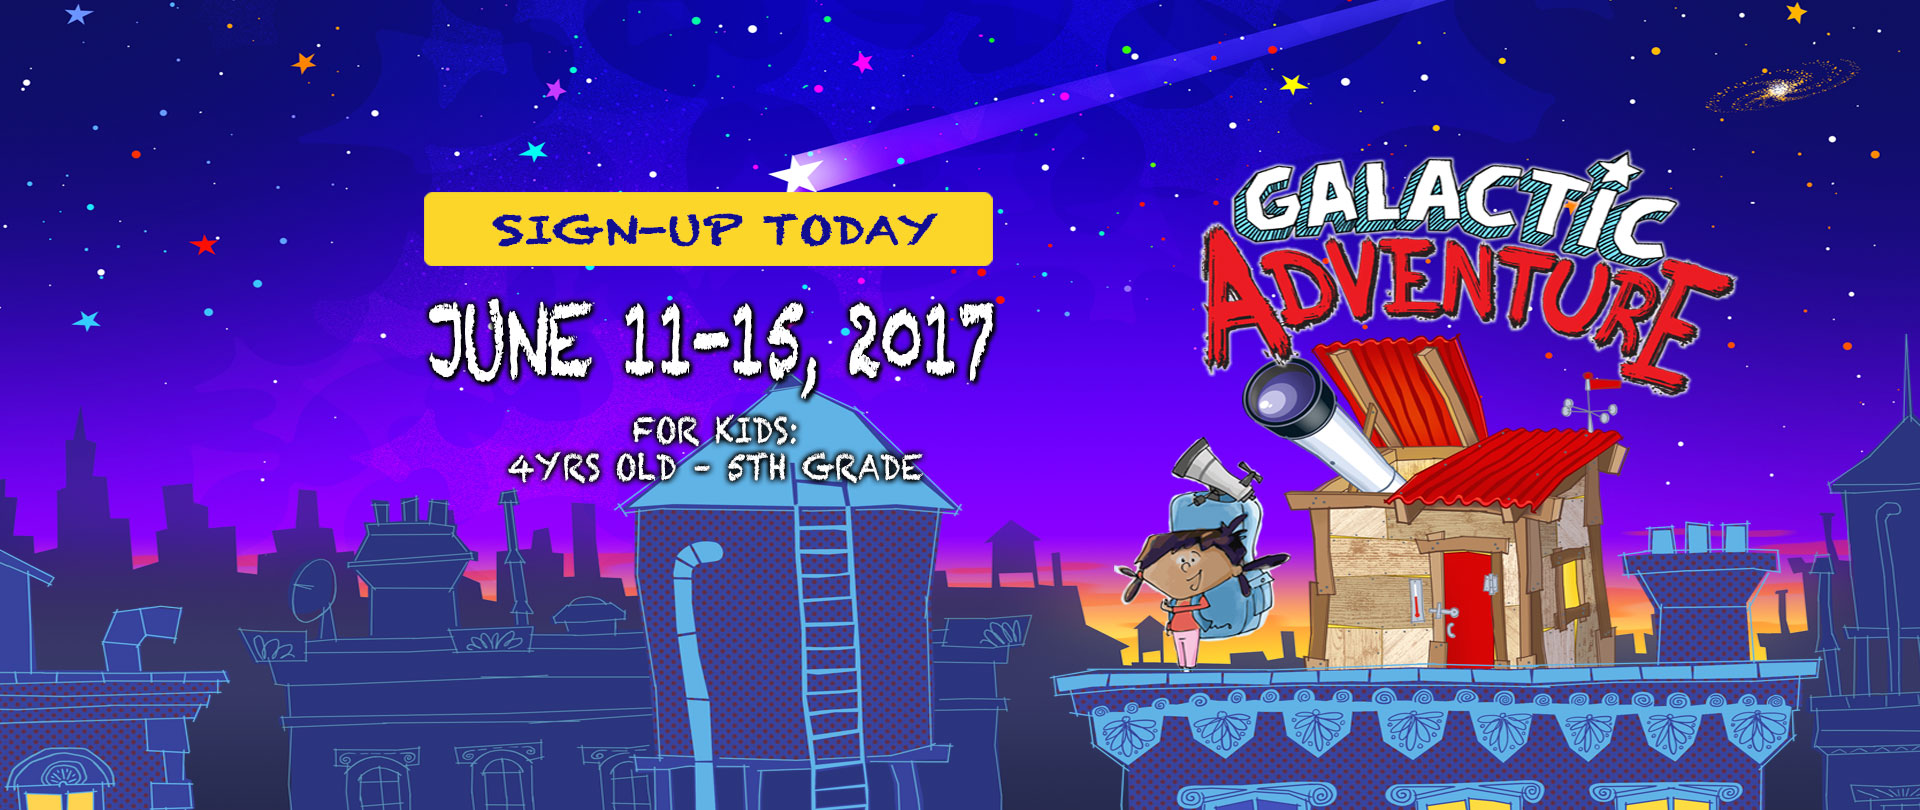 Galactic Adventure (VBS)